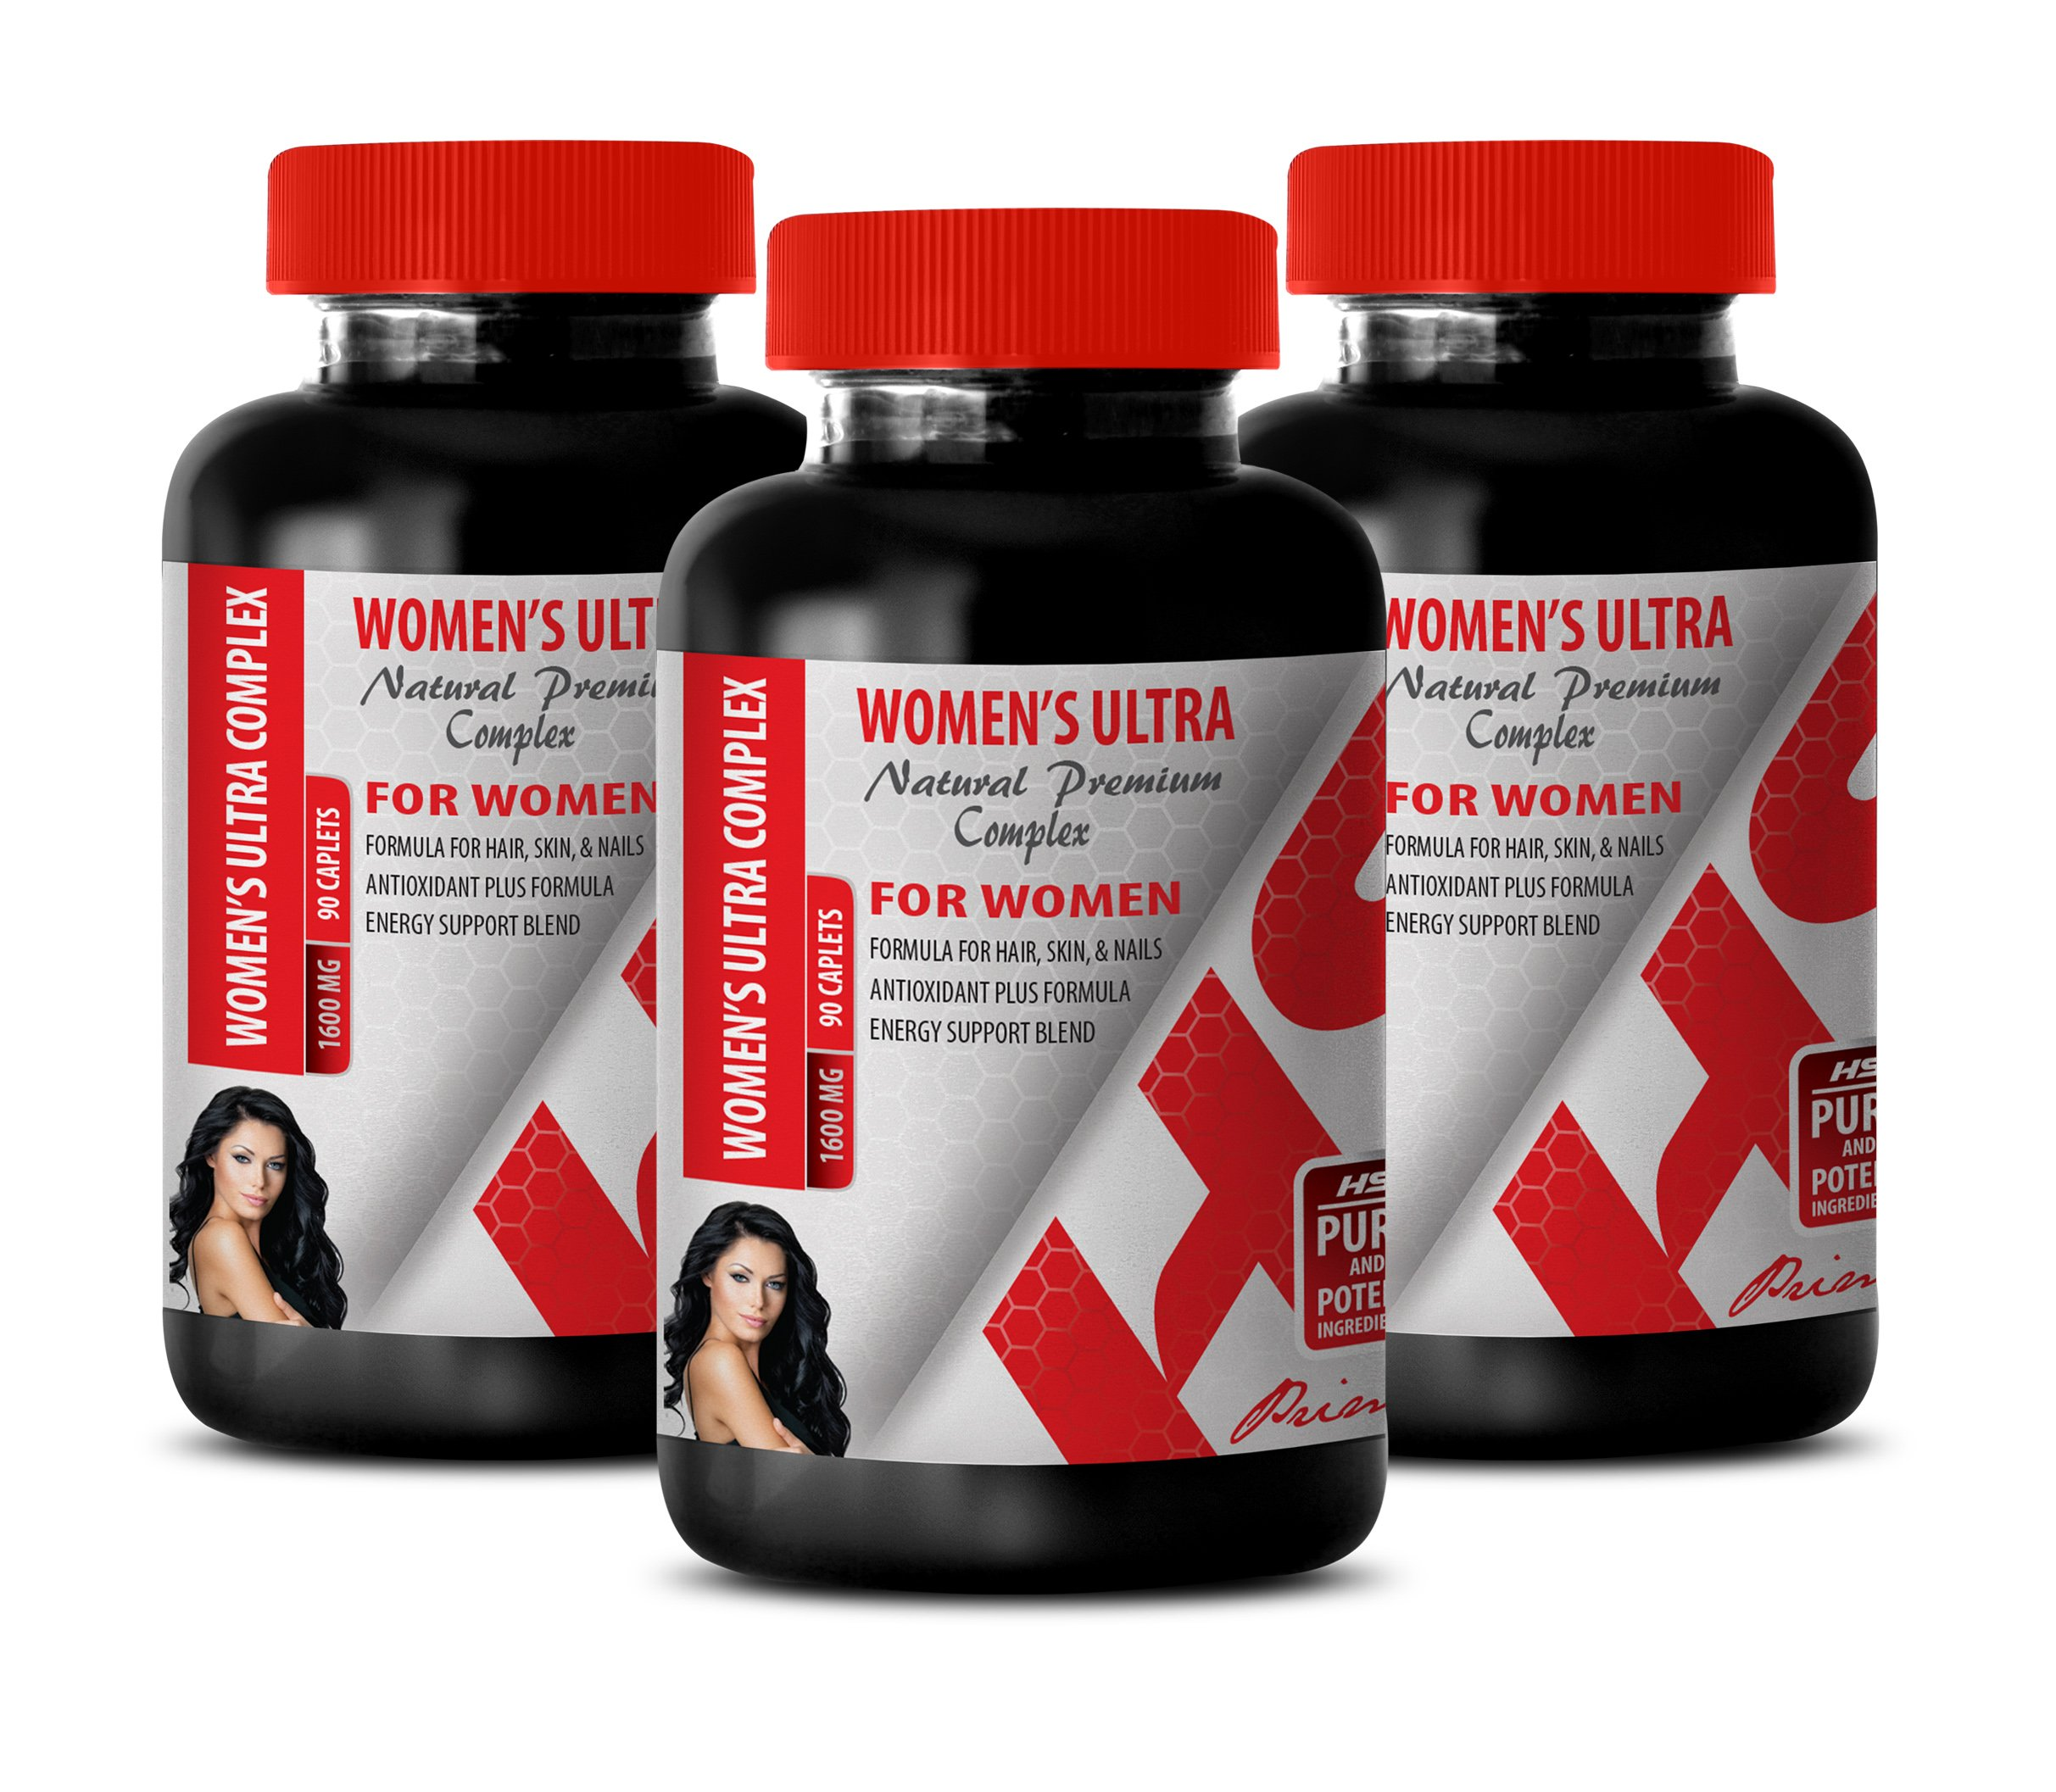 Hair Nail Skin Vitamins for Women - Women's Ultra Natural Premium Complex 1600 mg - Multivitamin for Women Capsules Natural - 3 Bottles 270 Caplets